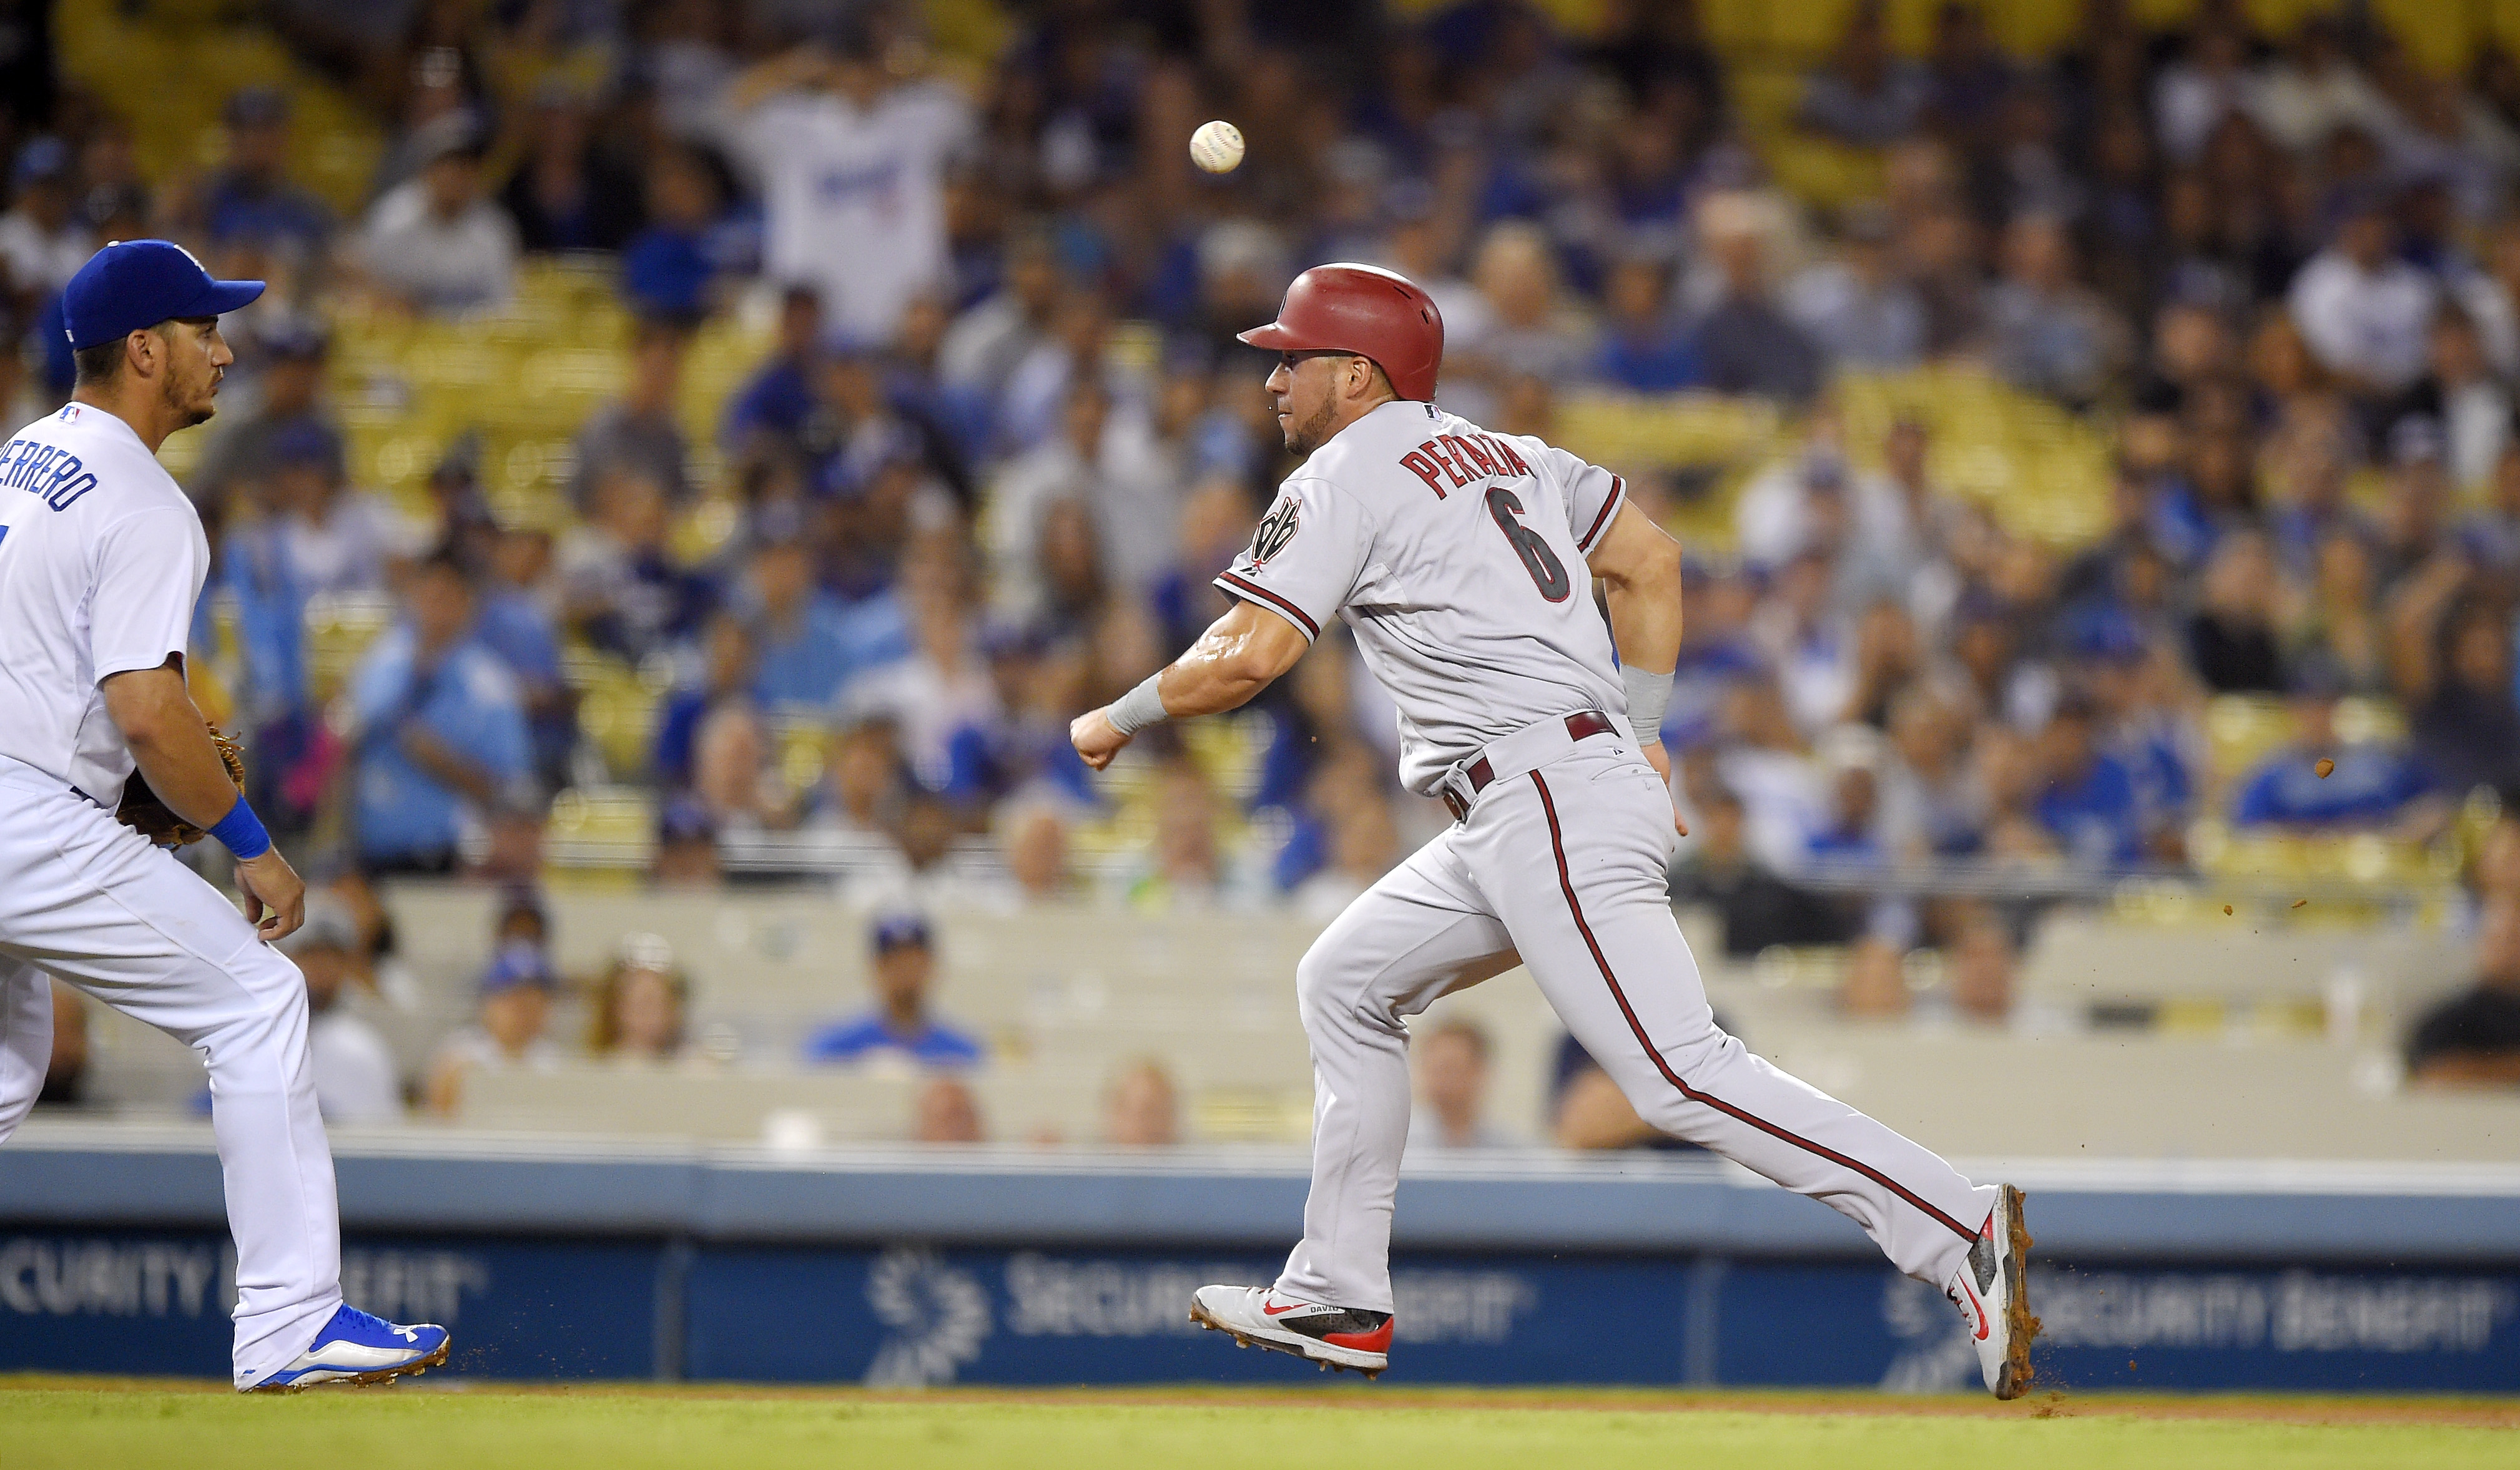 A ball sails over Arizona Diamondbacks' David Peralta, right, as he is caught between second an third while Los Angeles Dodgers left fielder Alex Guerrero watches during the eighth inning of a baseball game, Tuesday, Sept. 22, 2015, in Los Angeles. Peralt